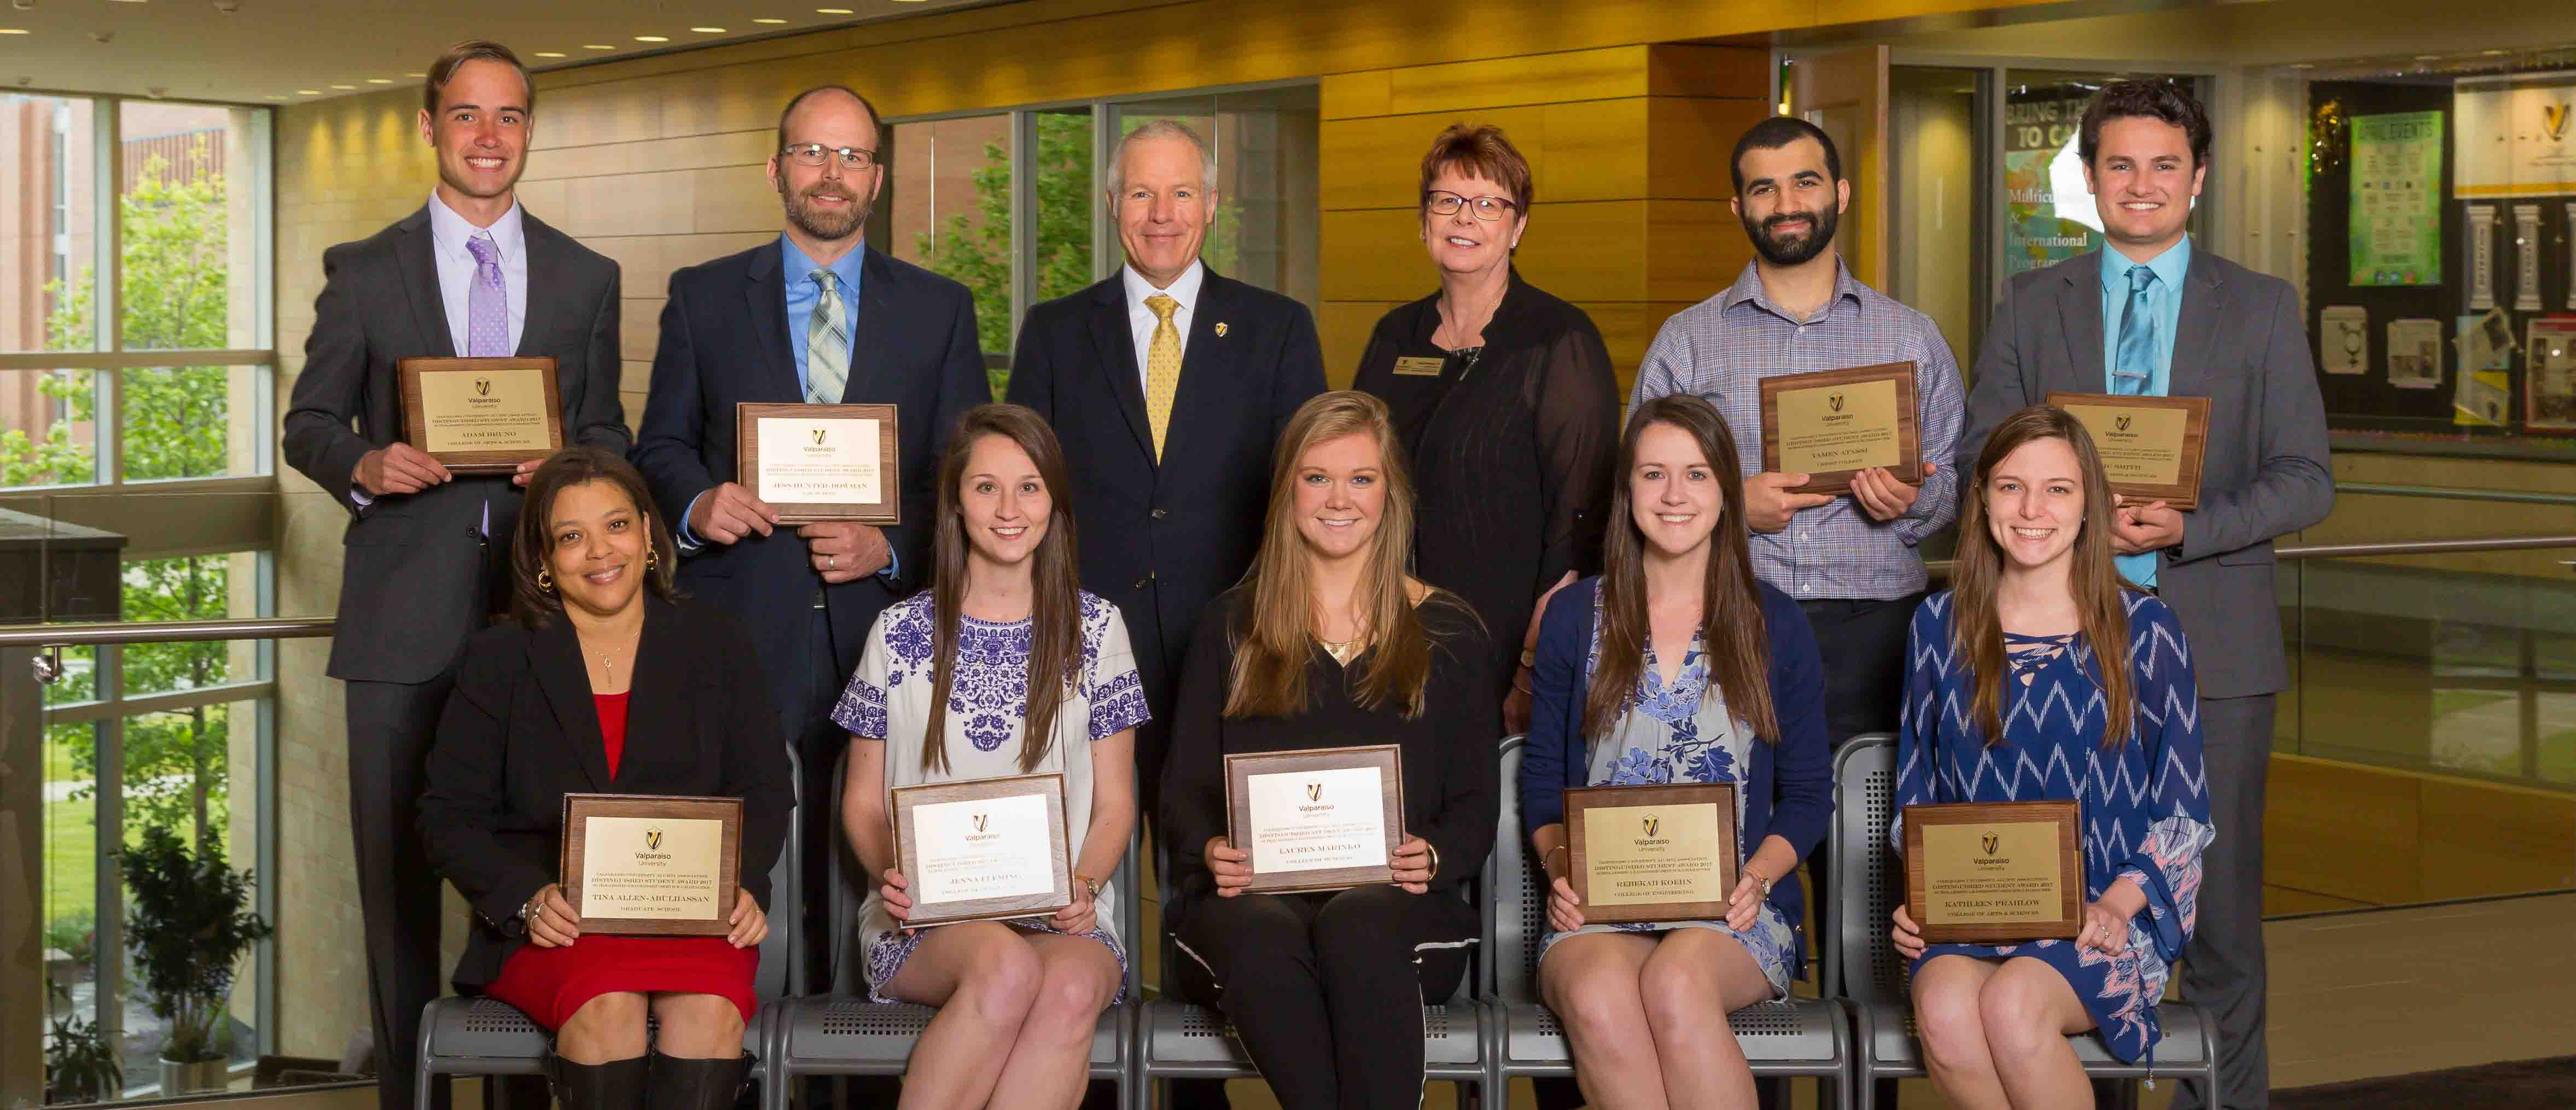 Congratulations to our 2017 VUAA Distinguished Student Award Recipients